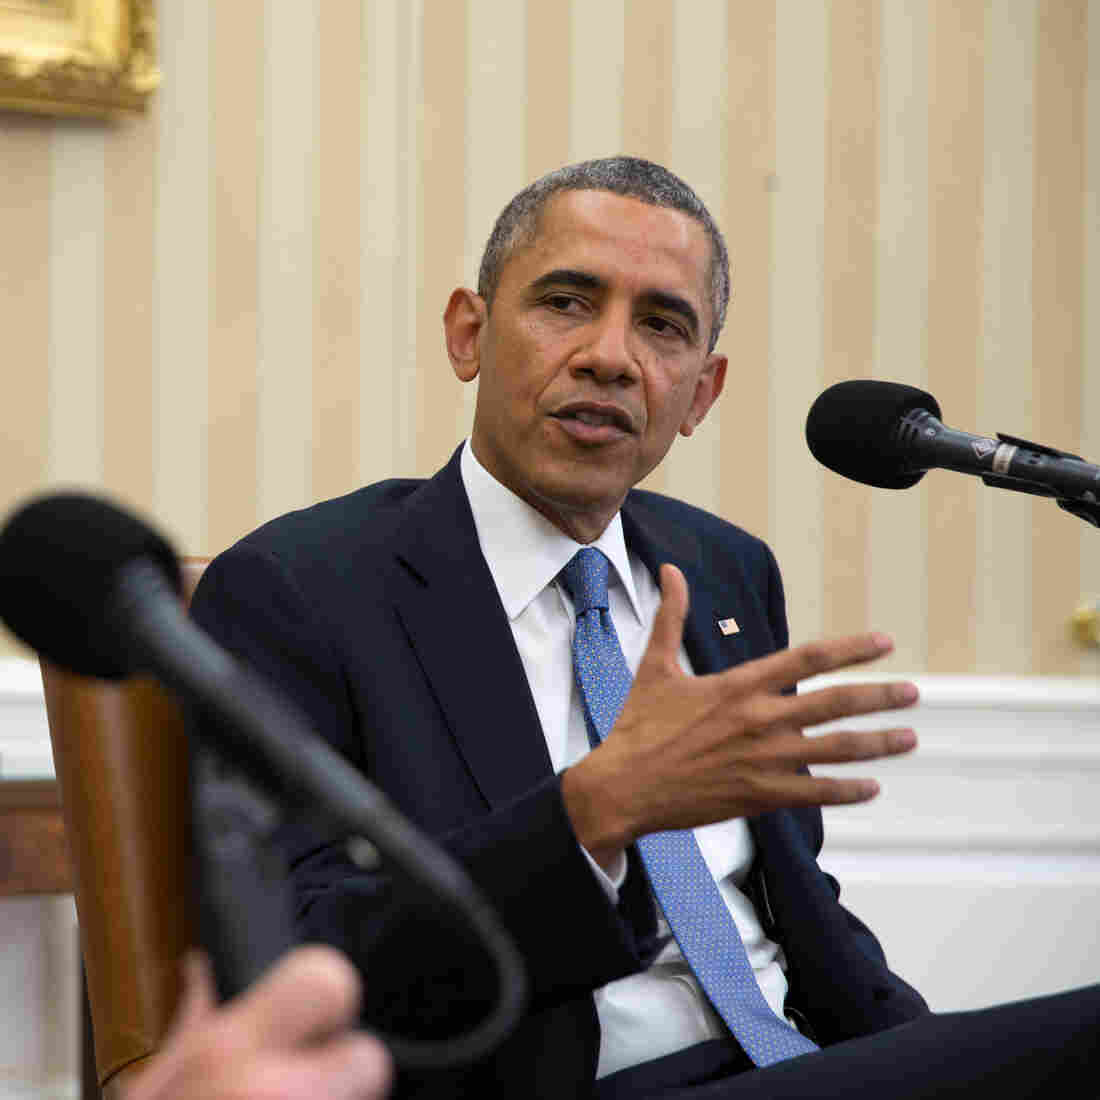 Obama: 'Perpetual Cycle Of Brinksmanship ... Has To End'